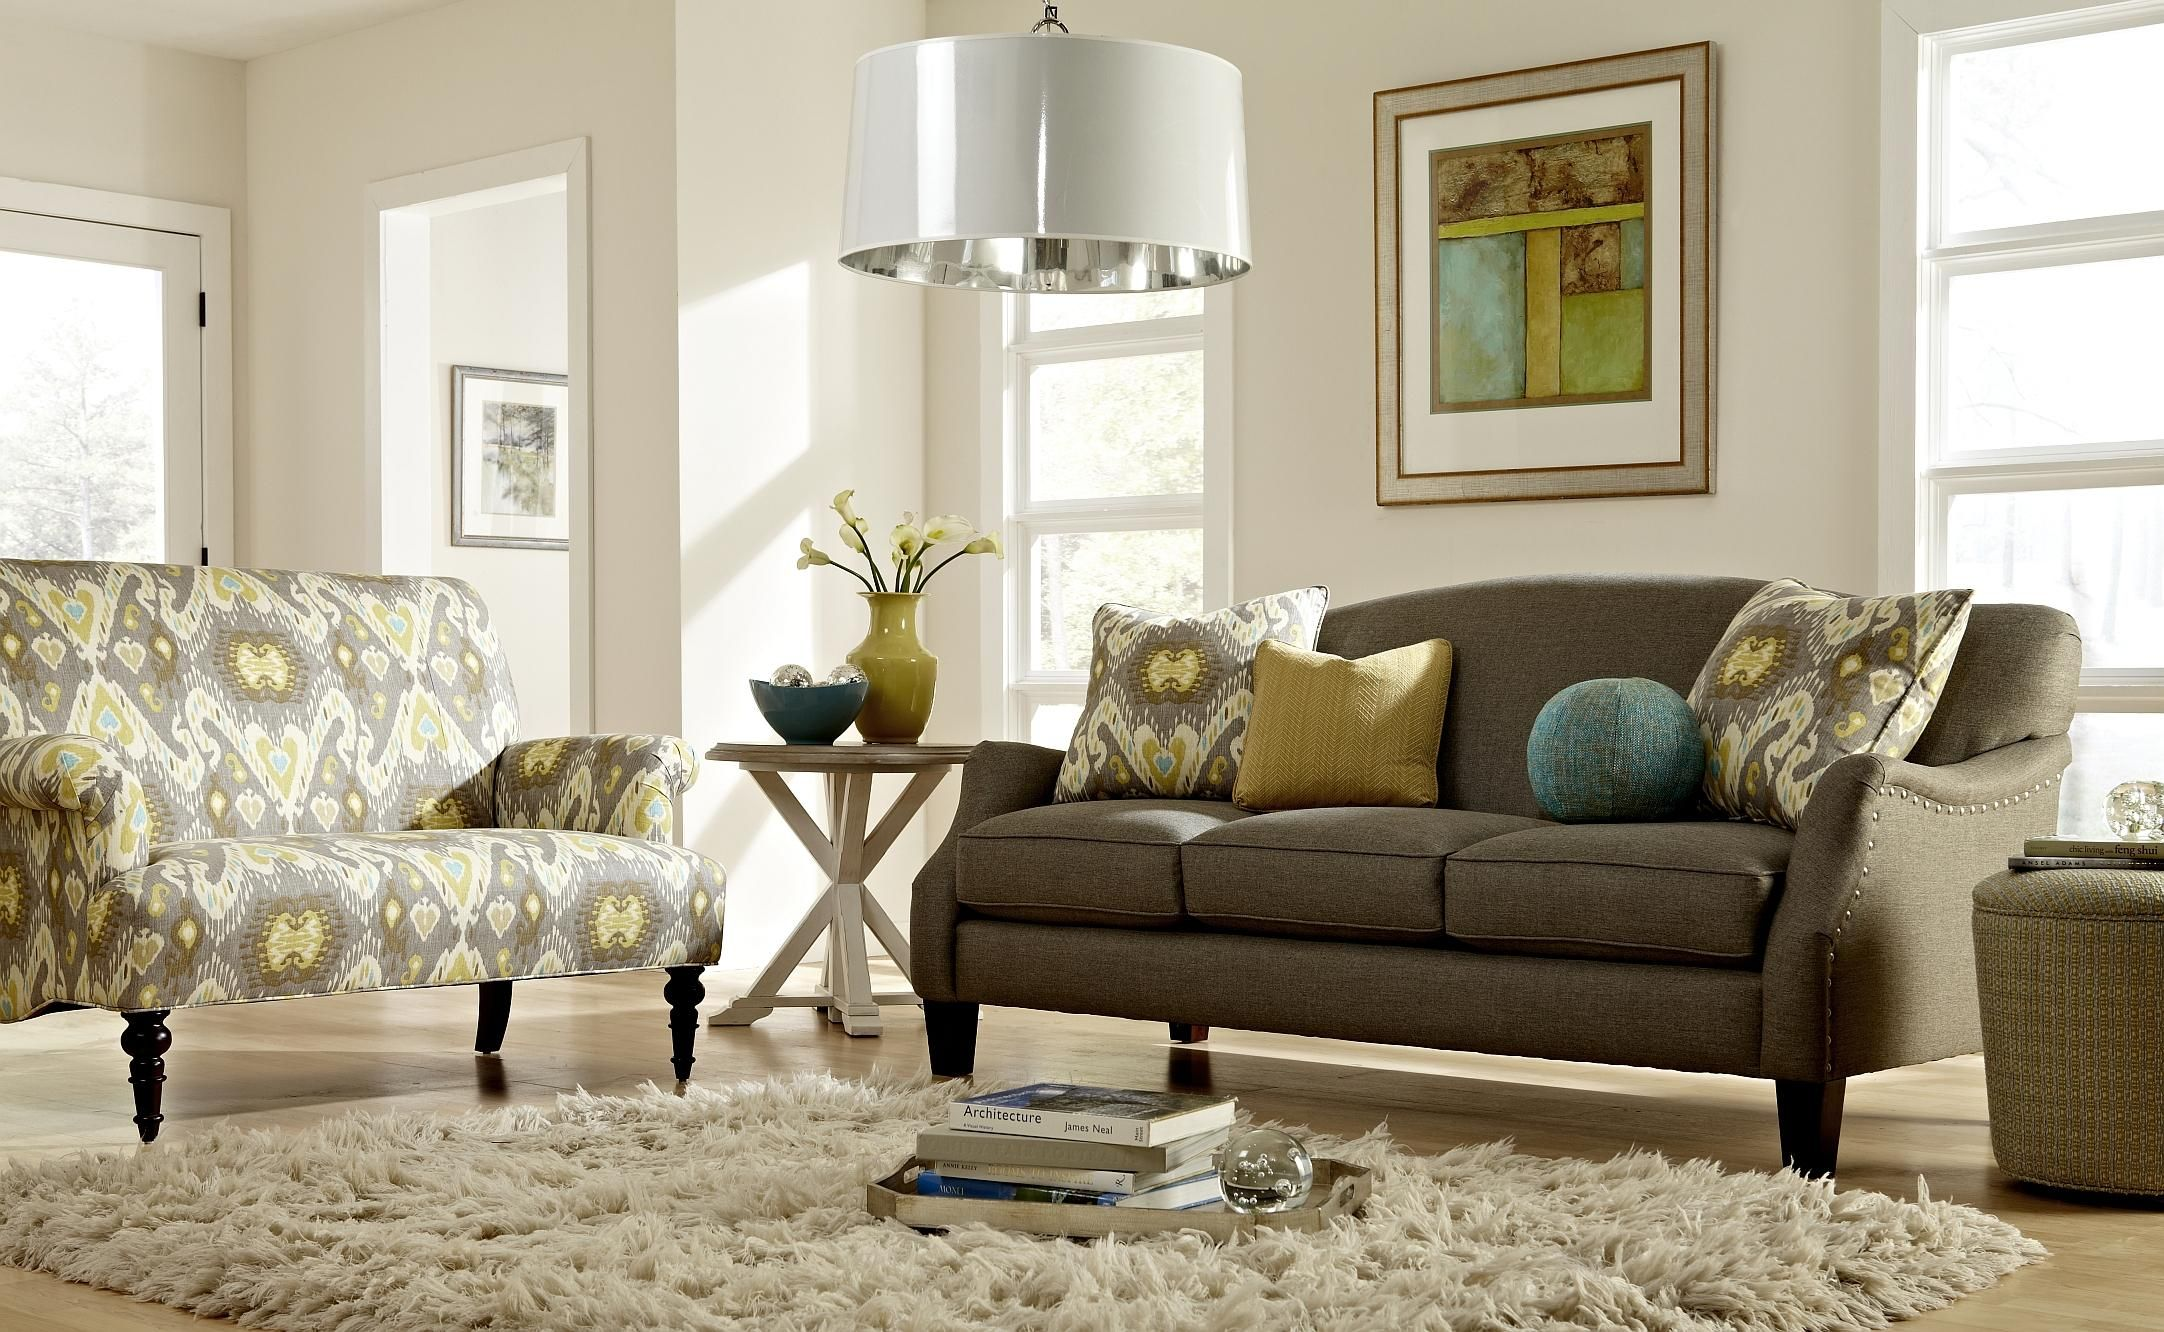 Unique for sure paired with the perfect shag rug and - Unique accent chairs for living room ...